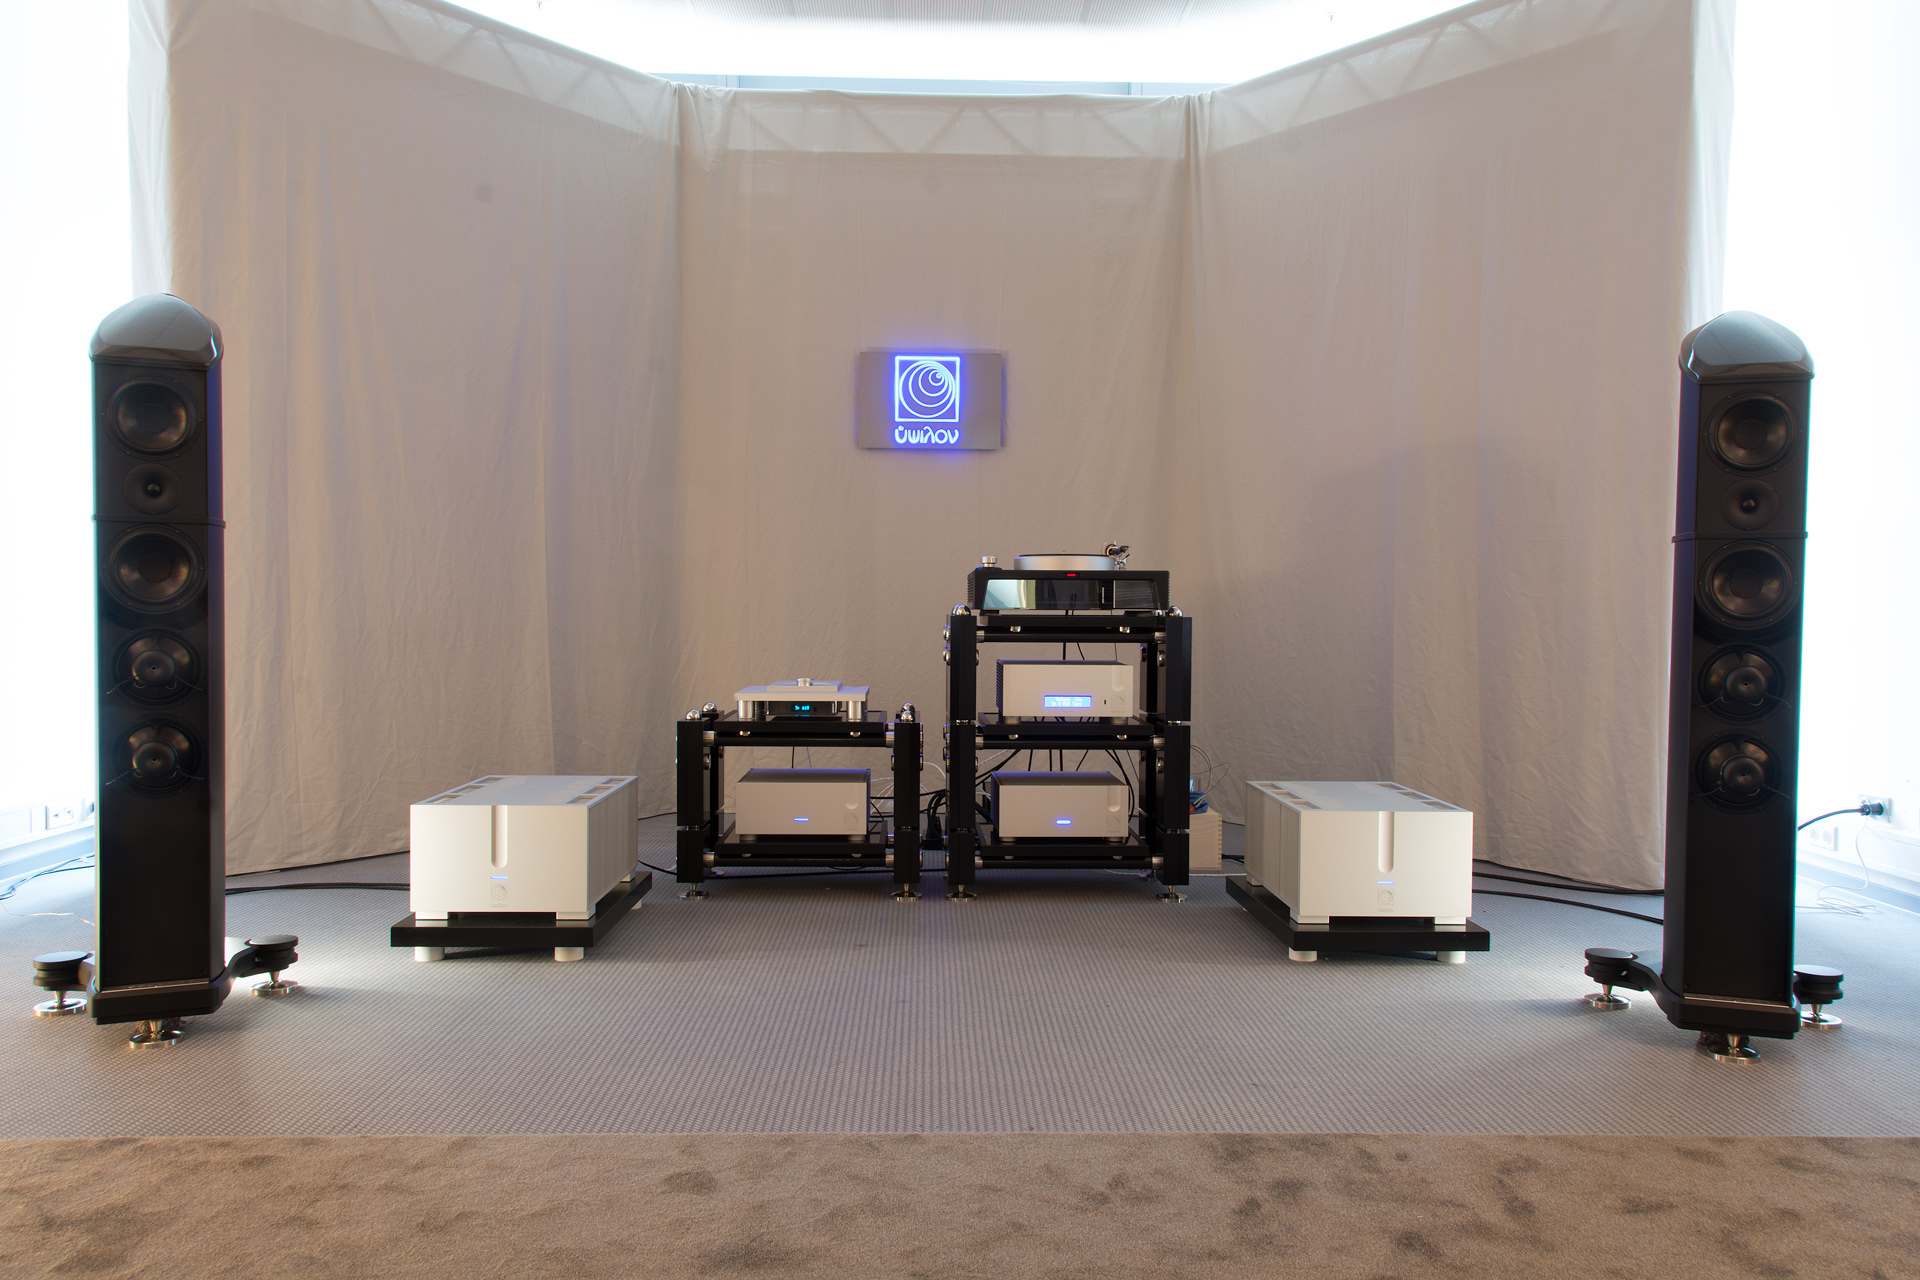 Wilson Benesch - Resolution - Munich High End - Ypsilon - Hyperion - Monoblock - Amplifier - VPS-100 Phono Stage - 2017